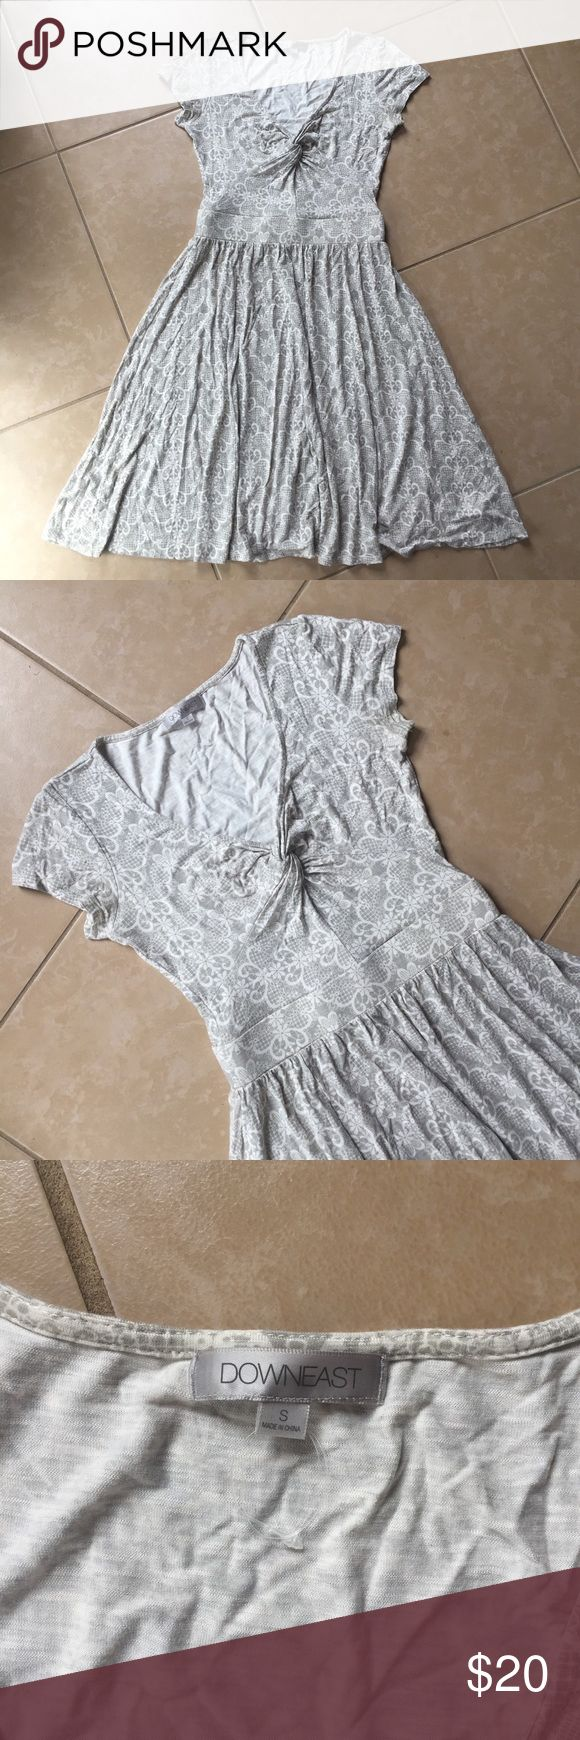 Downeast Basics grey print jersey knit dress Gorgeous lace print knit dress by Downeast Basics. Size S. Excellent condition, just very faint yellowing on underarms. Downeast Dresses